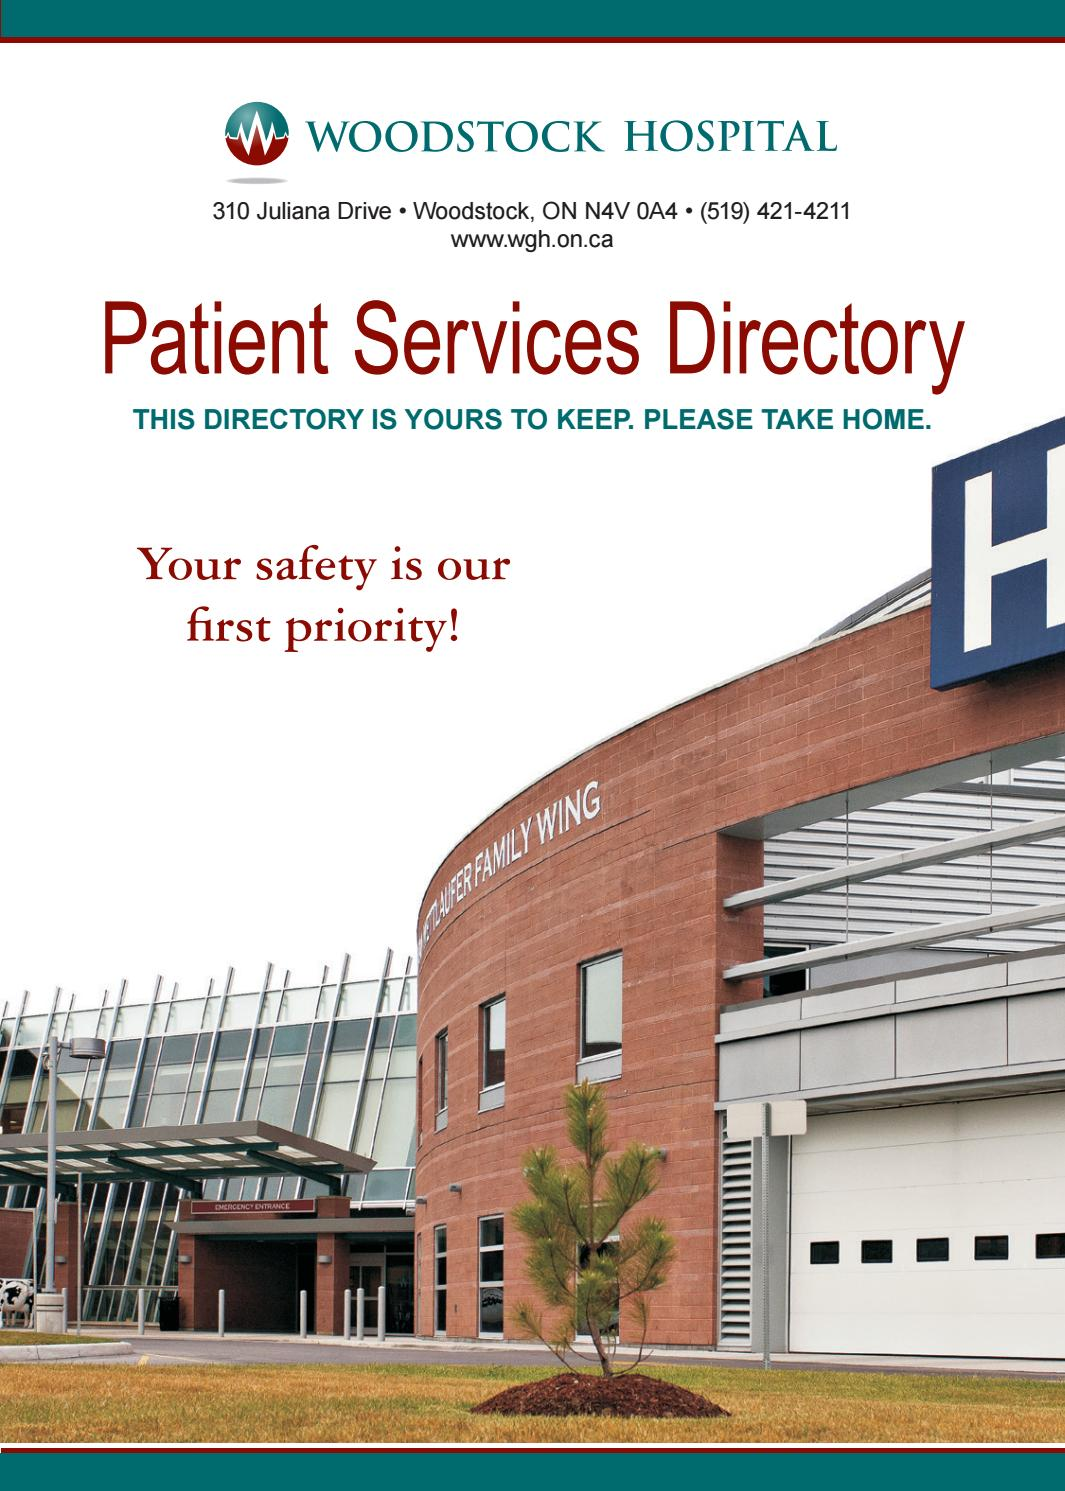 woodstock hospital patient services directory by willow publishing - issuu